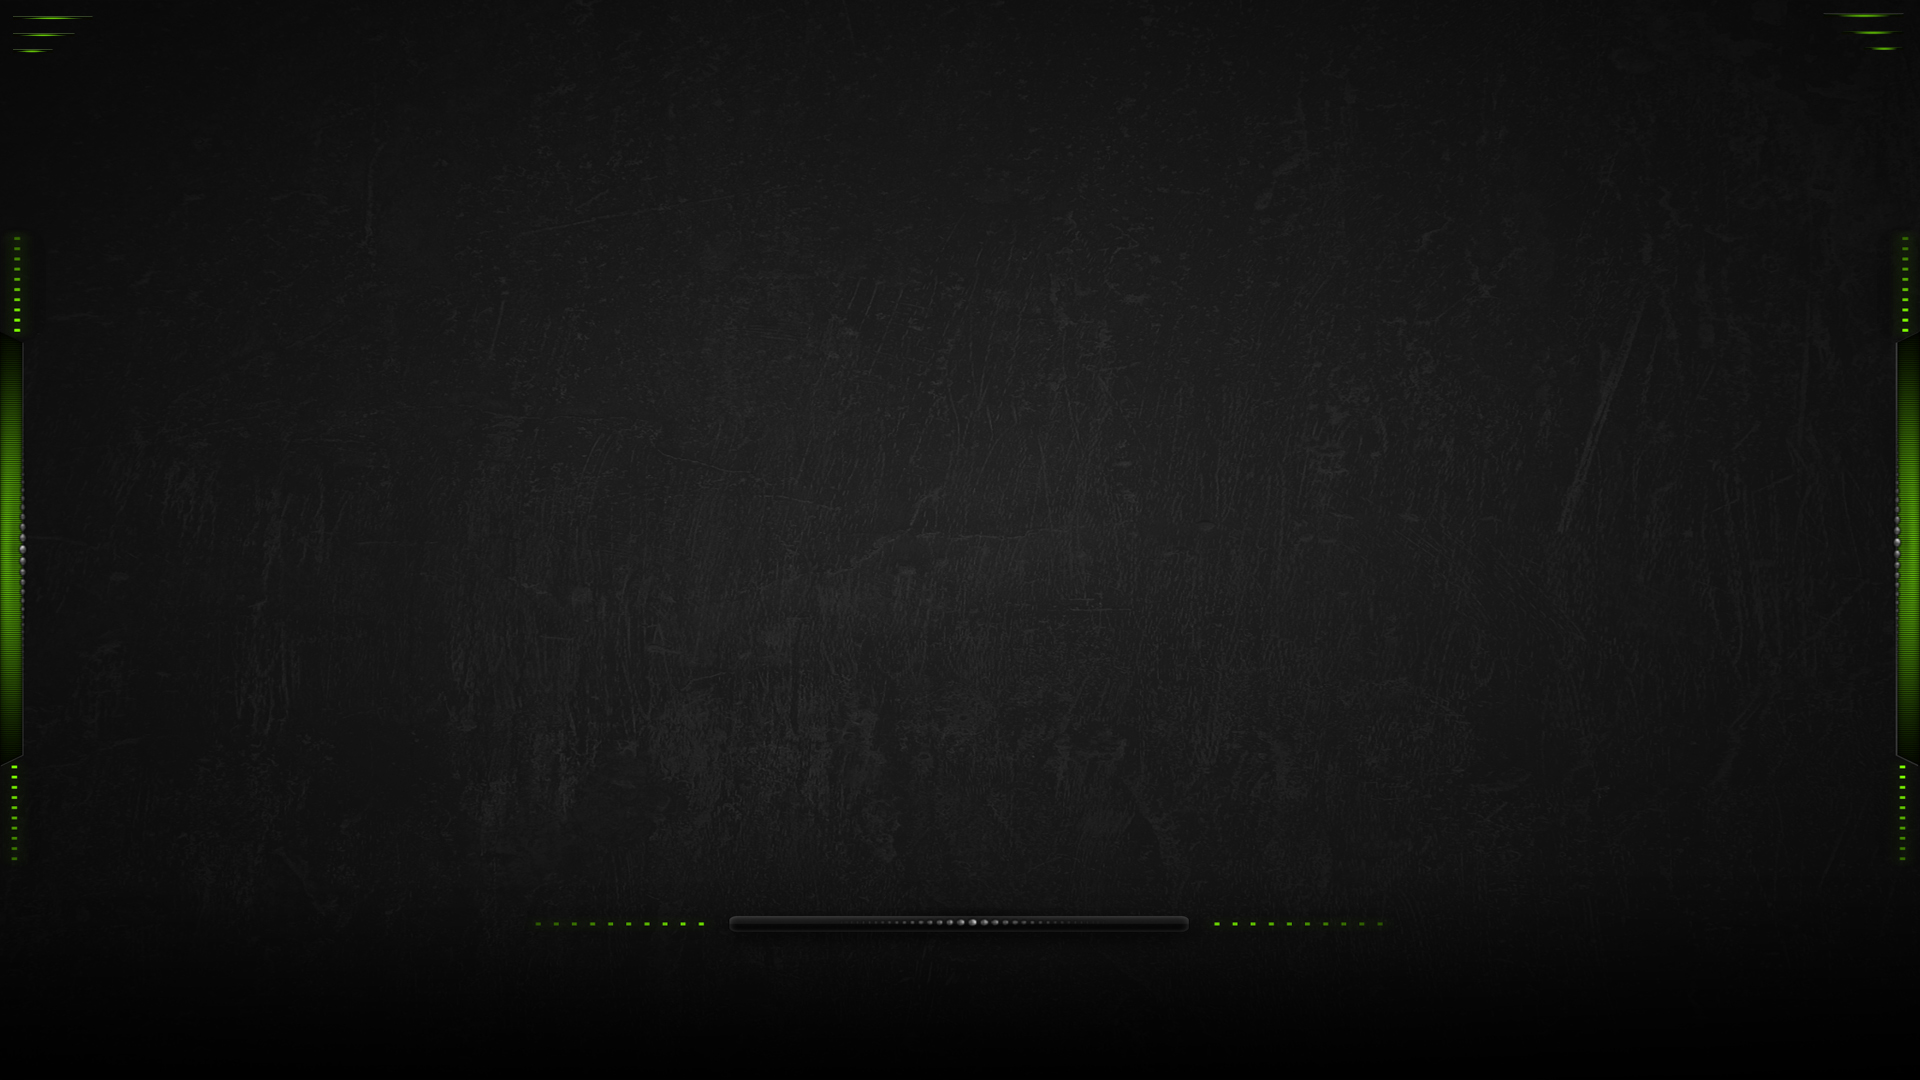 Plain Wallpapers HD green black